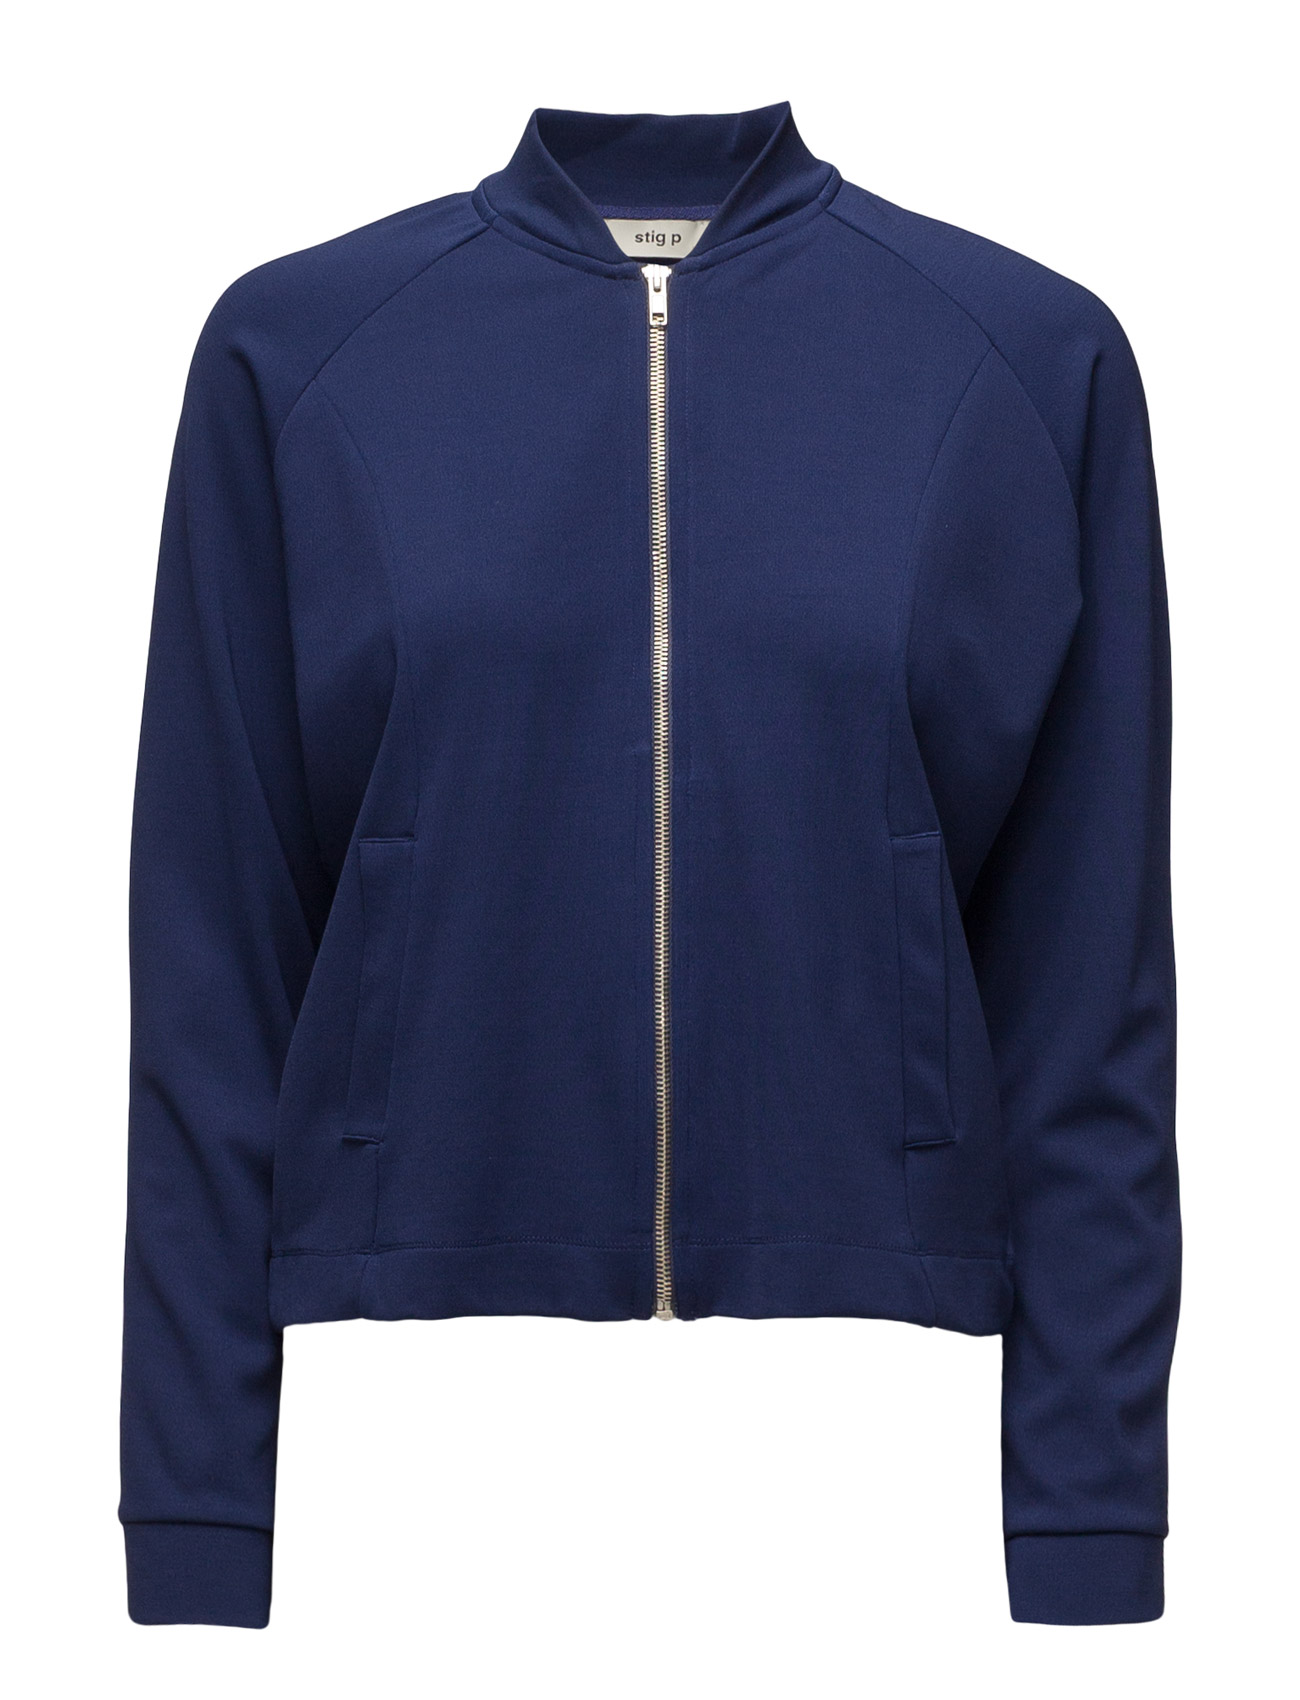 Malin Zip Jacket Stig P Jackets